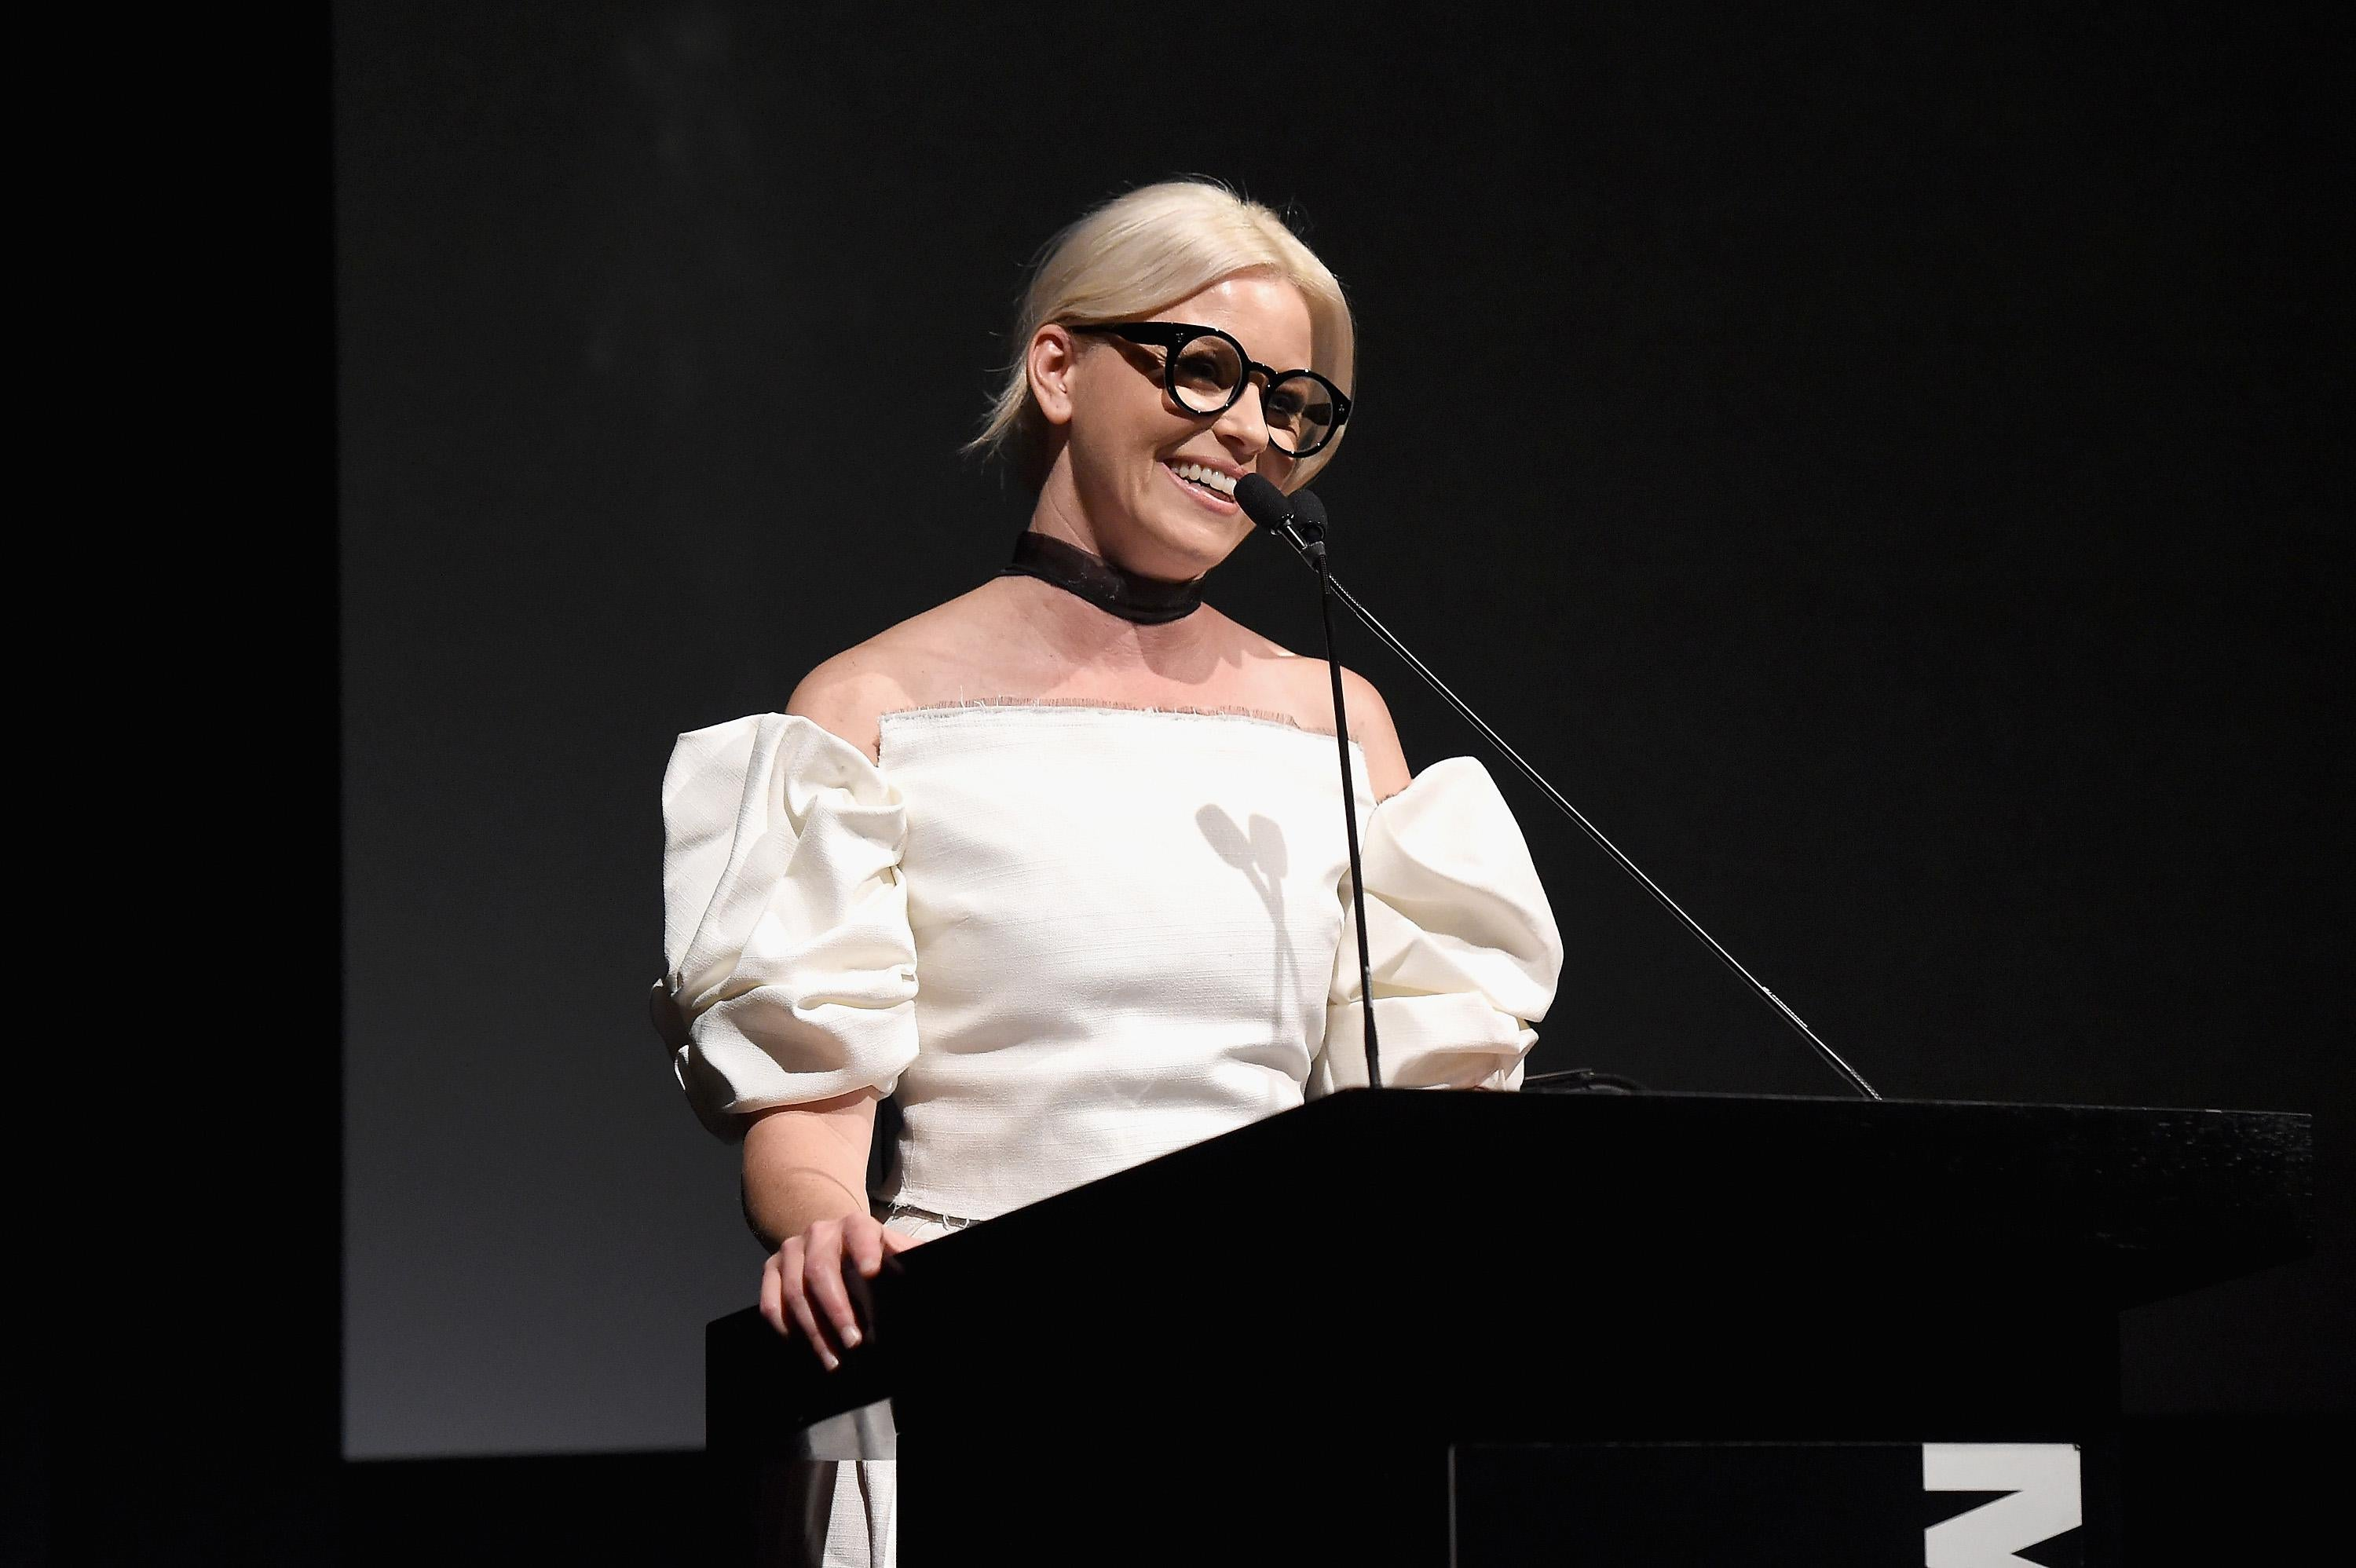 Elizabeth Banks speaks onstage at The Museum of Modern Art Film Benefit